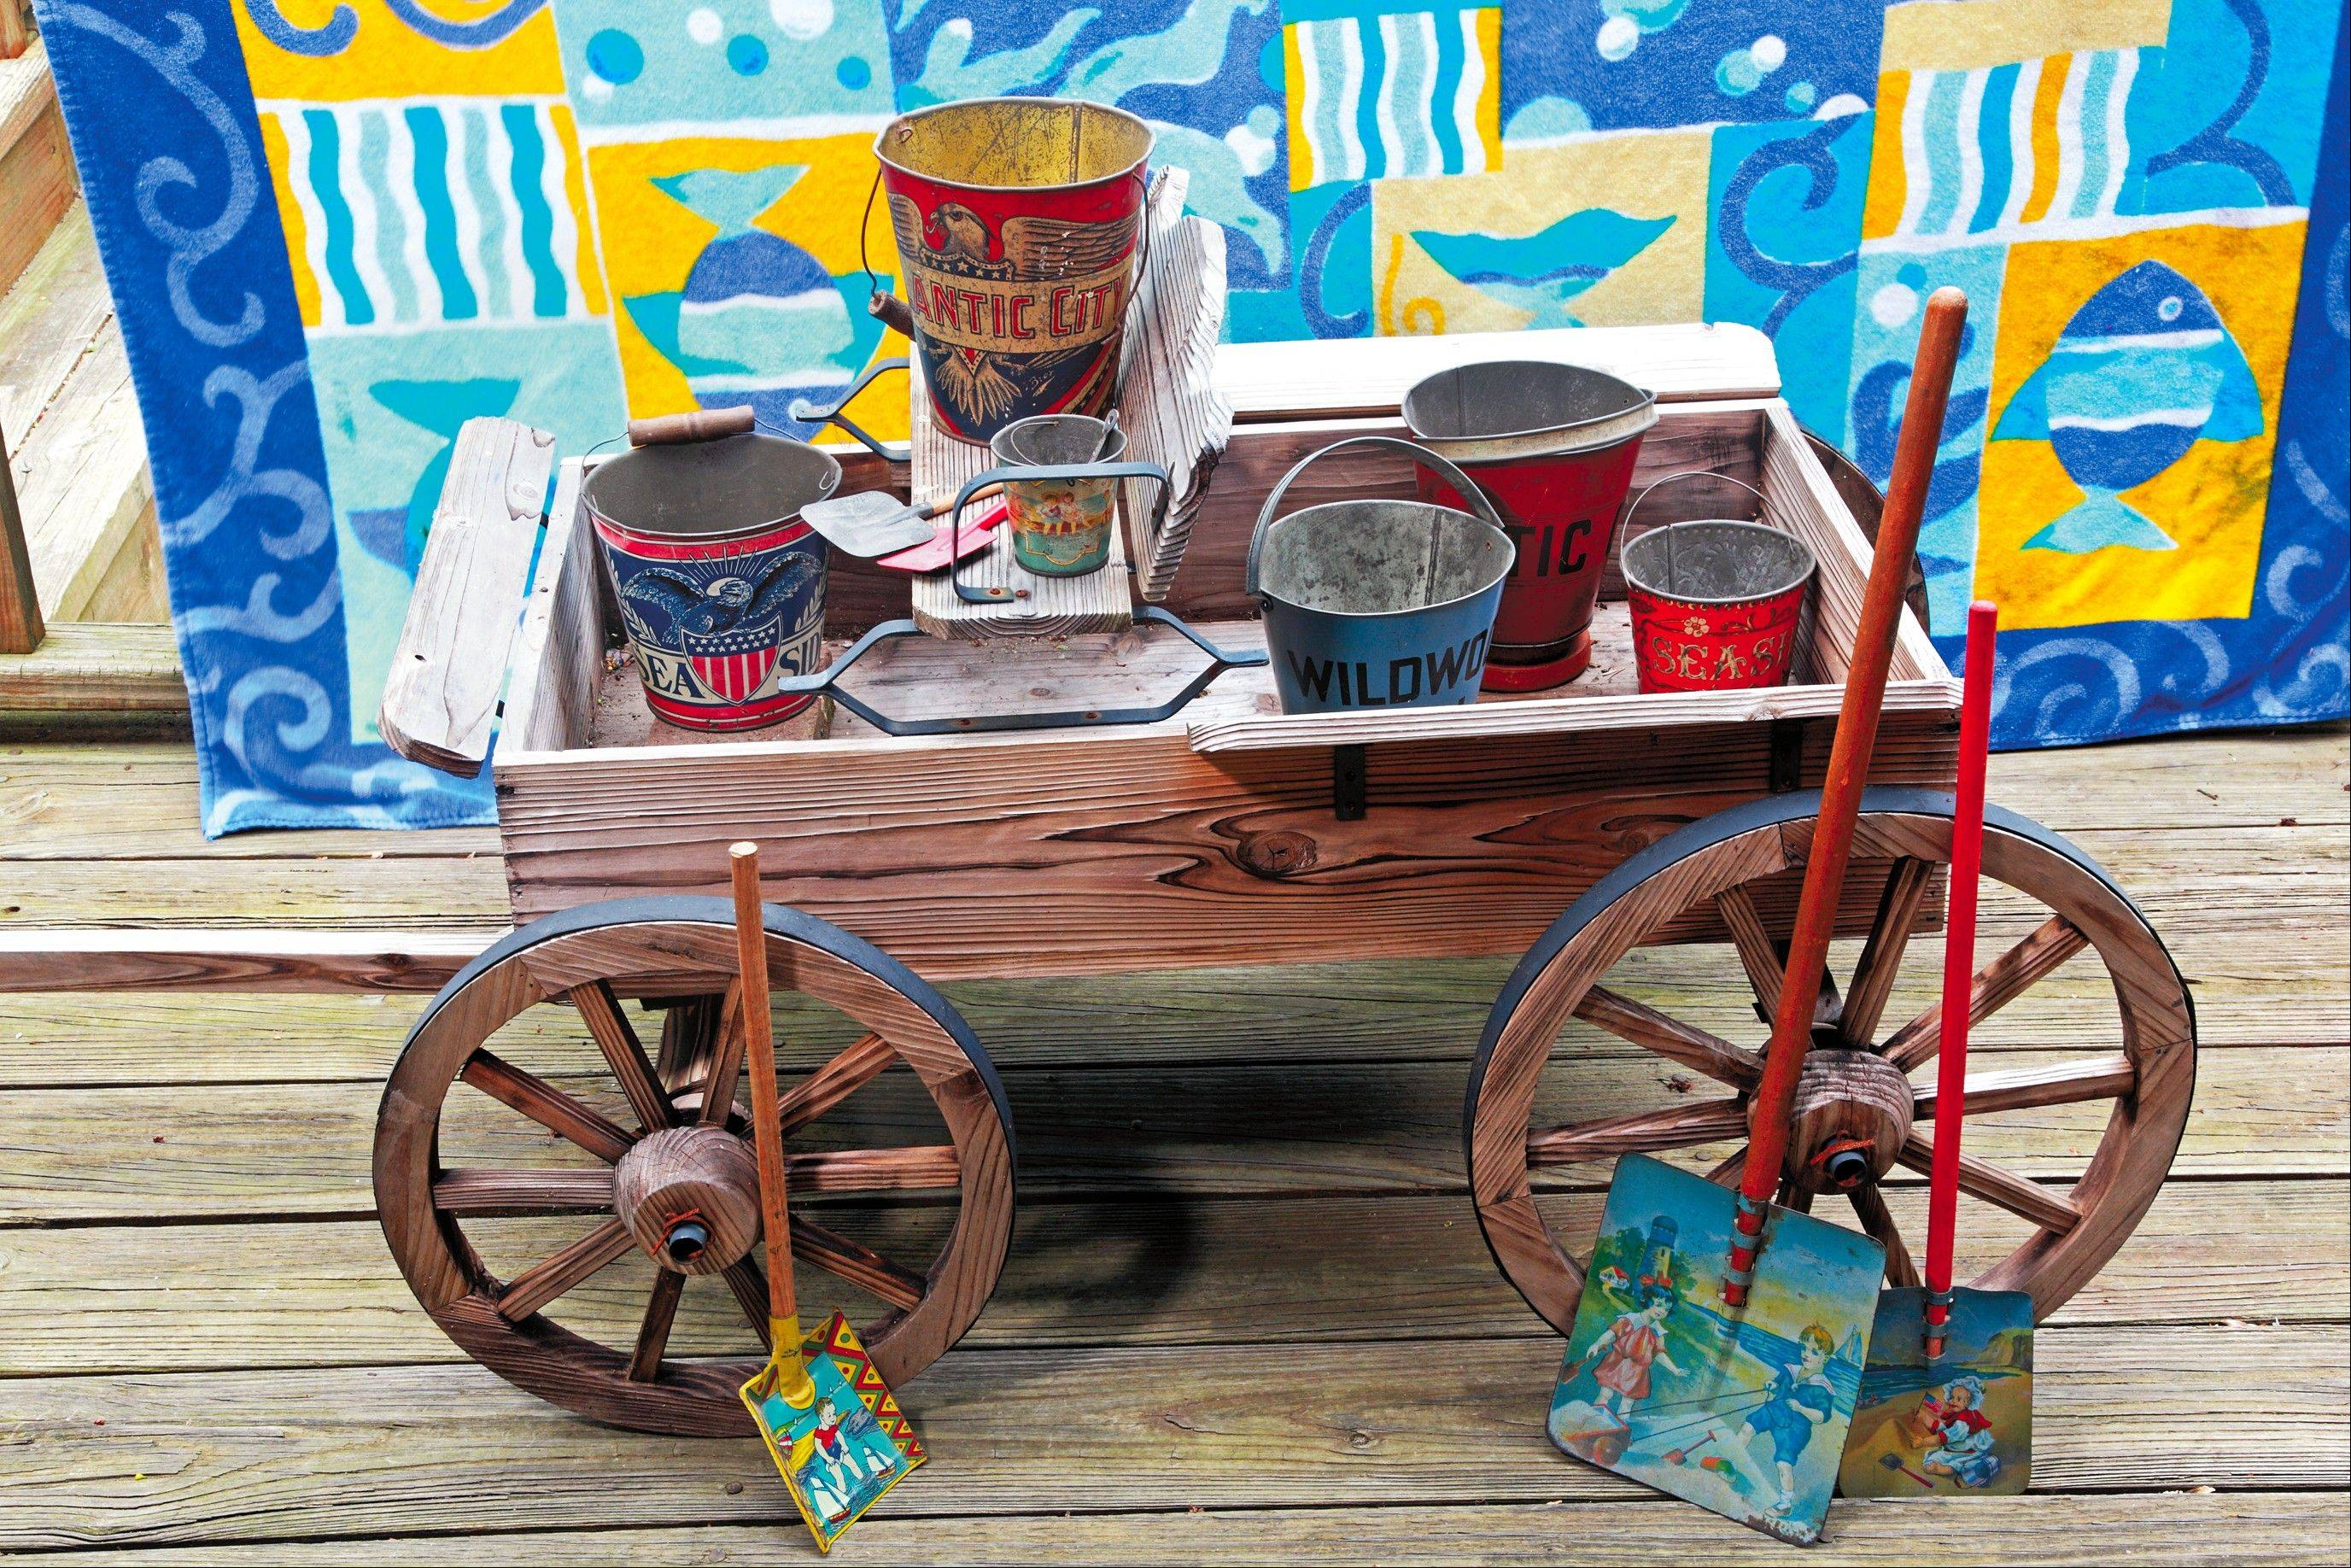 Beach pails and shovels are a hot new collectible.